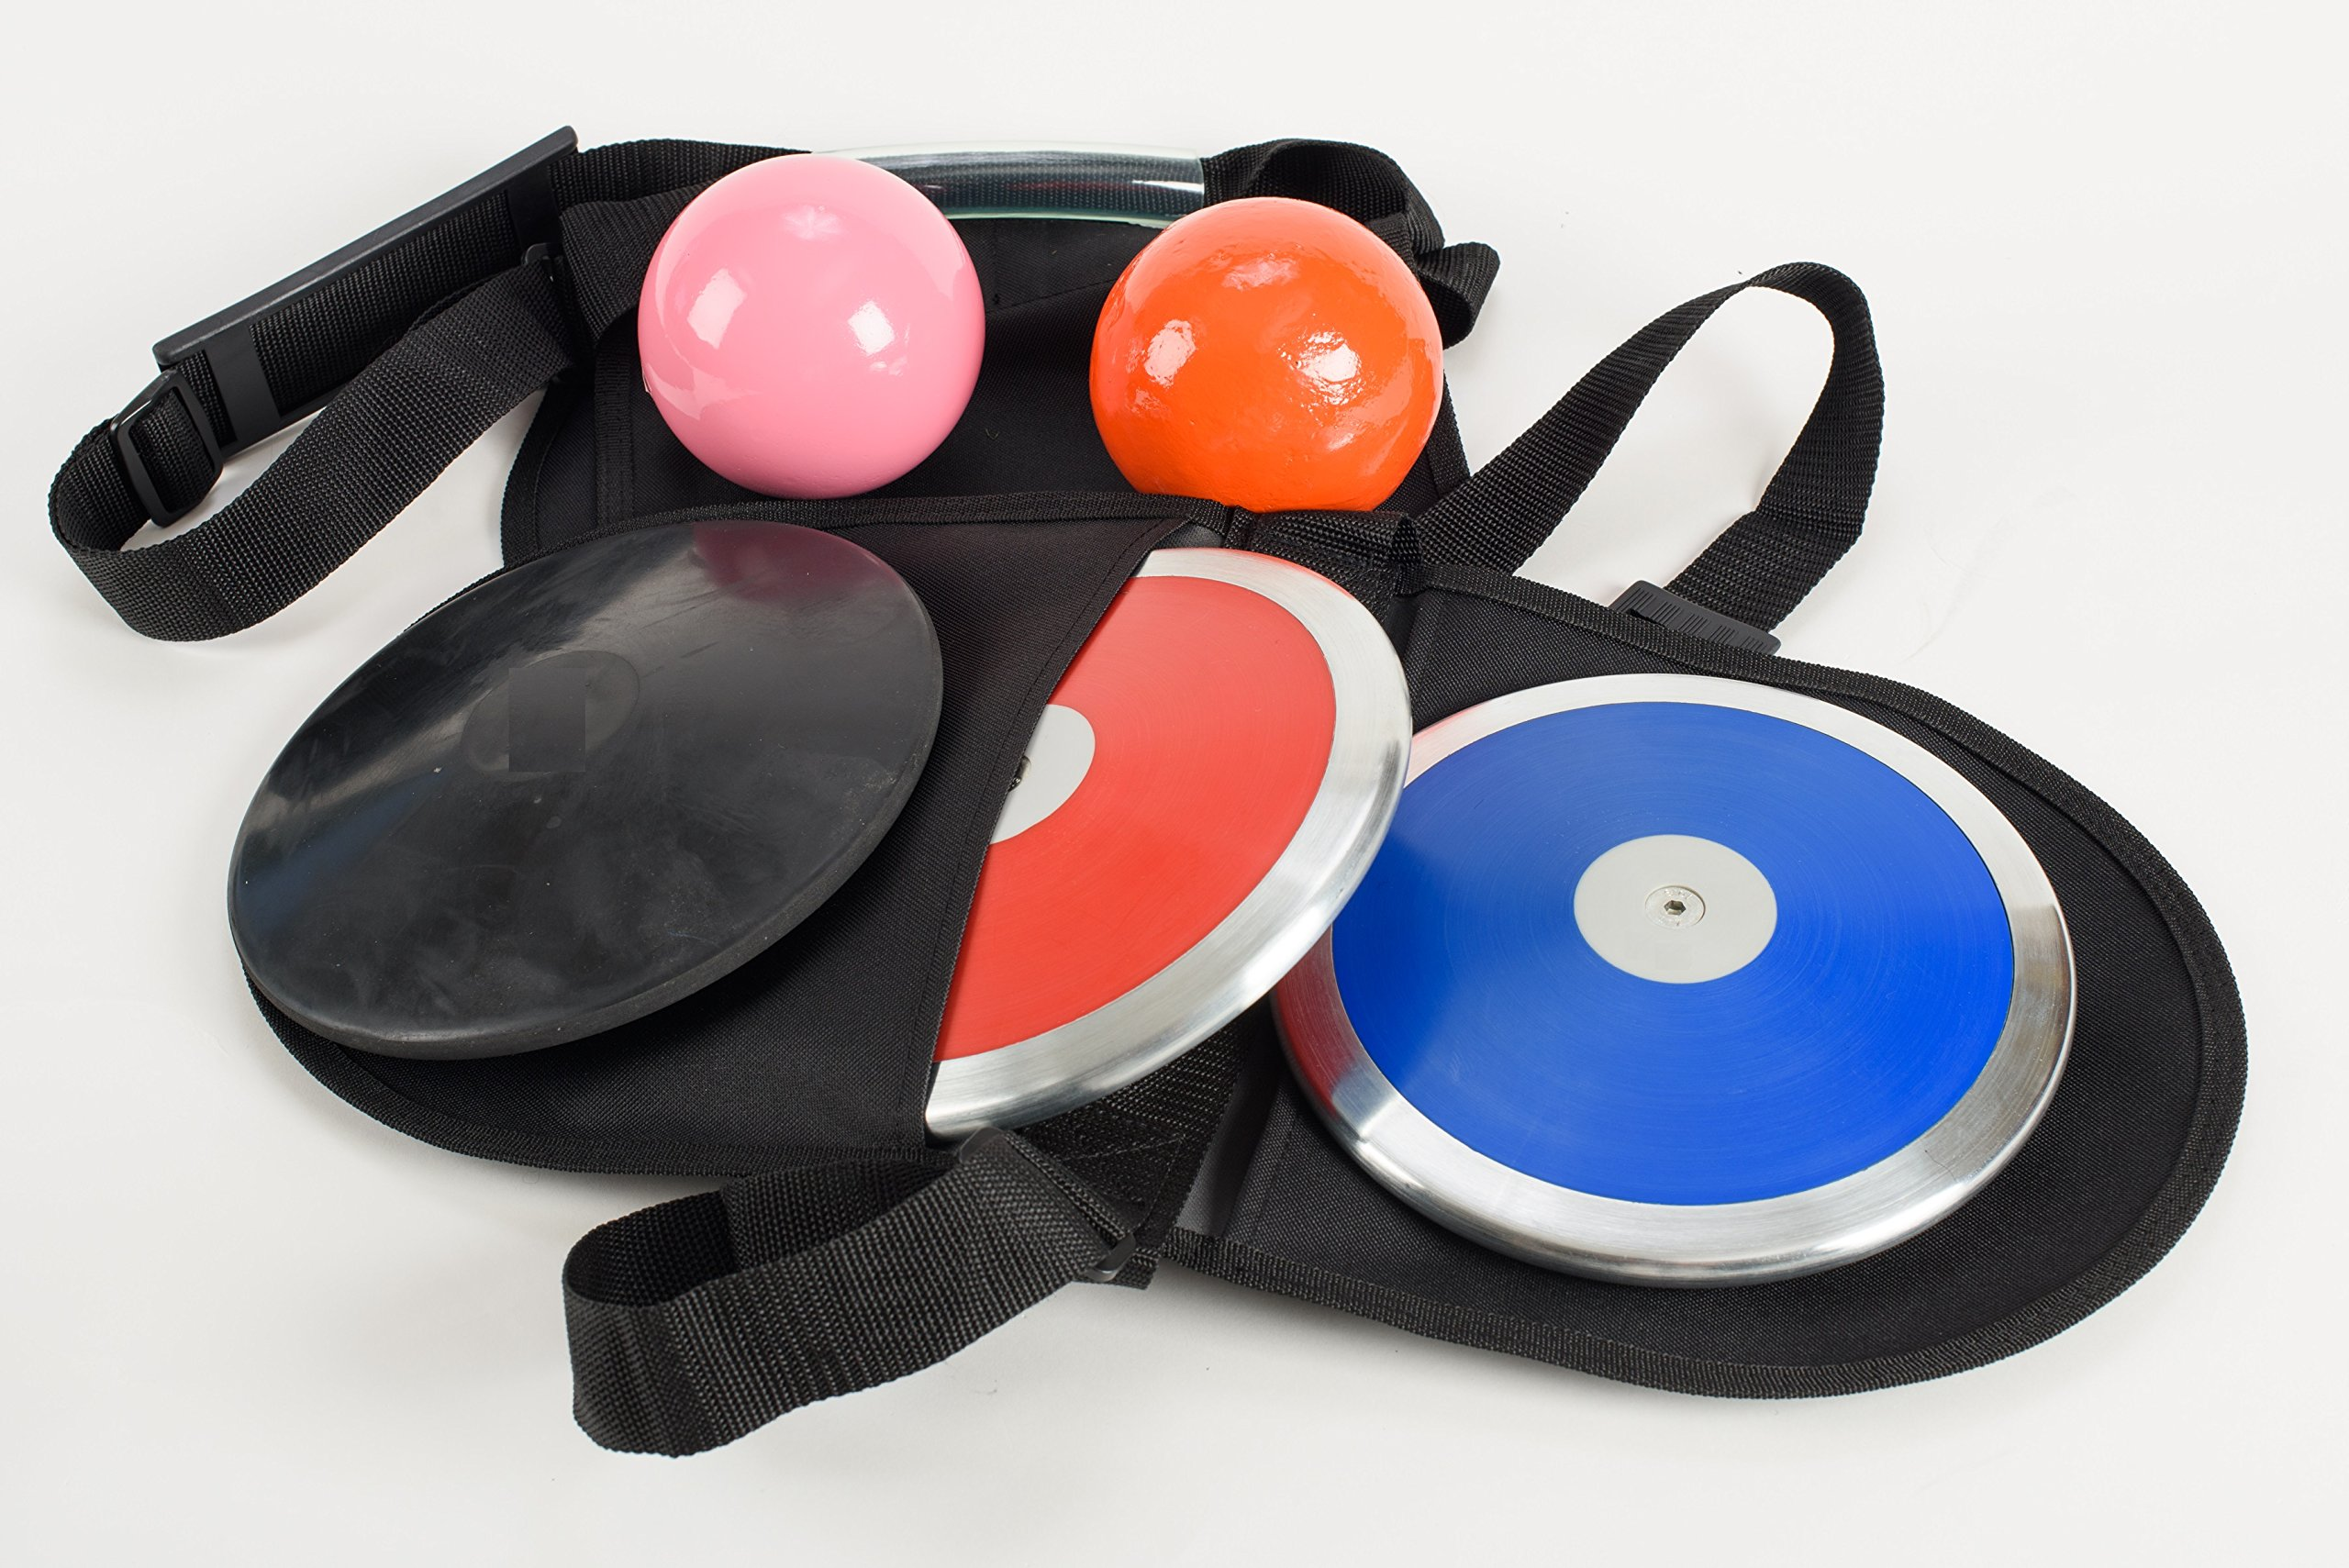 High School Ladies discus and shot put throws package. Beginner to intermediate skilled implement throwers value pack. Quality backed 3 year warranty.